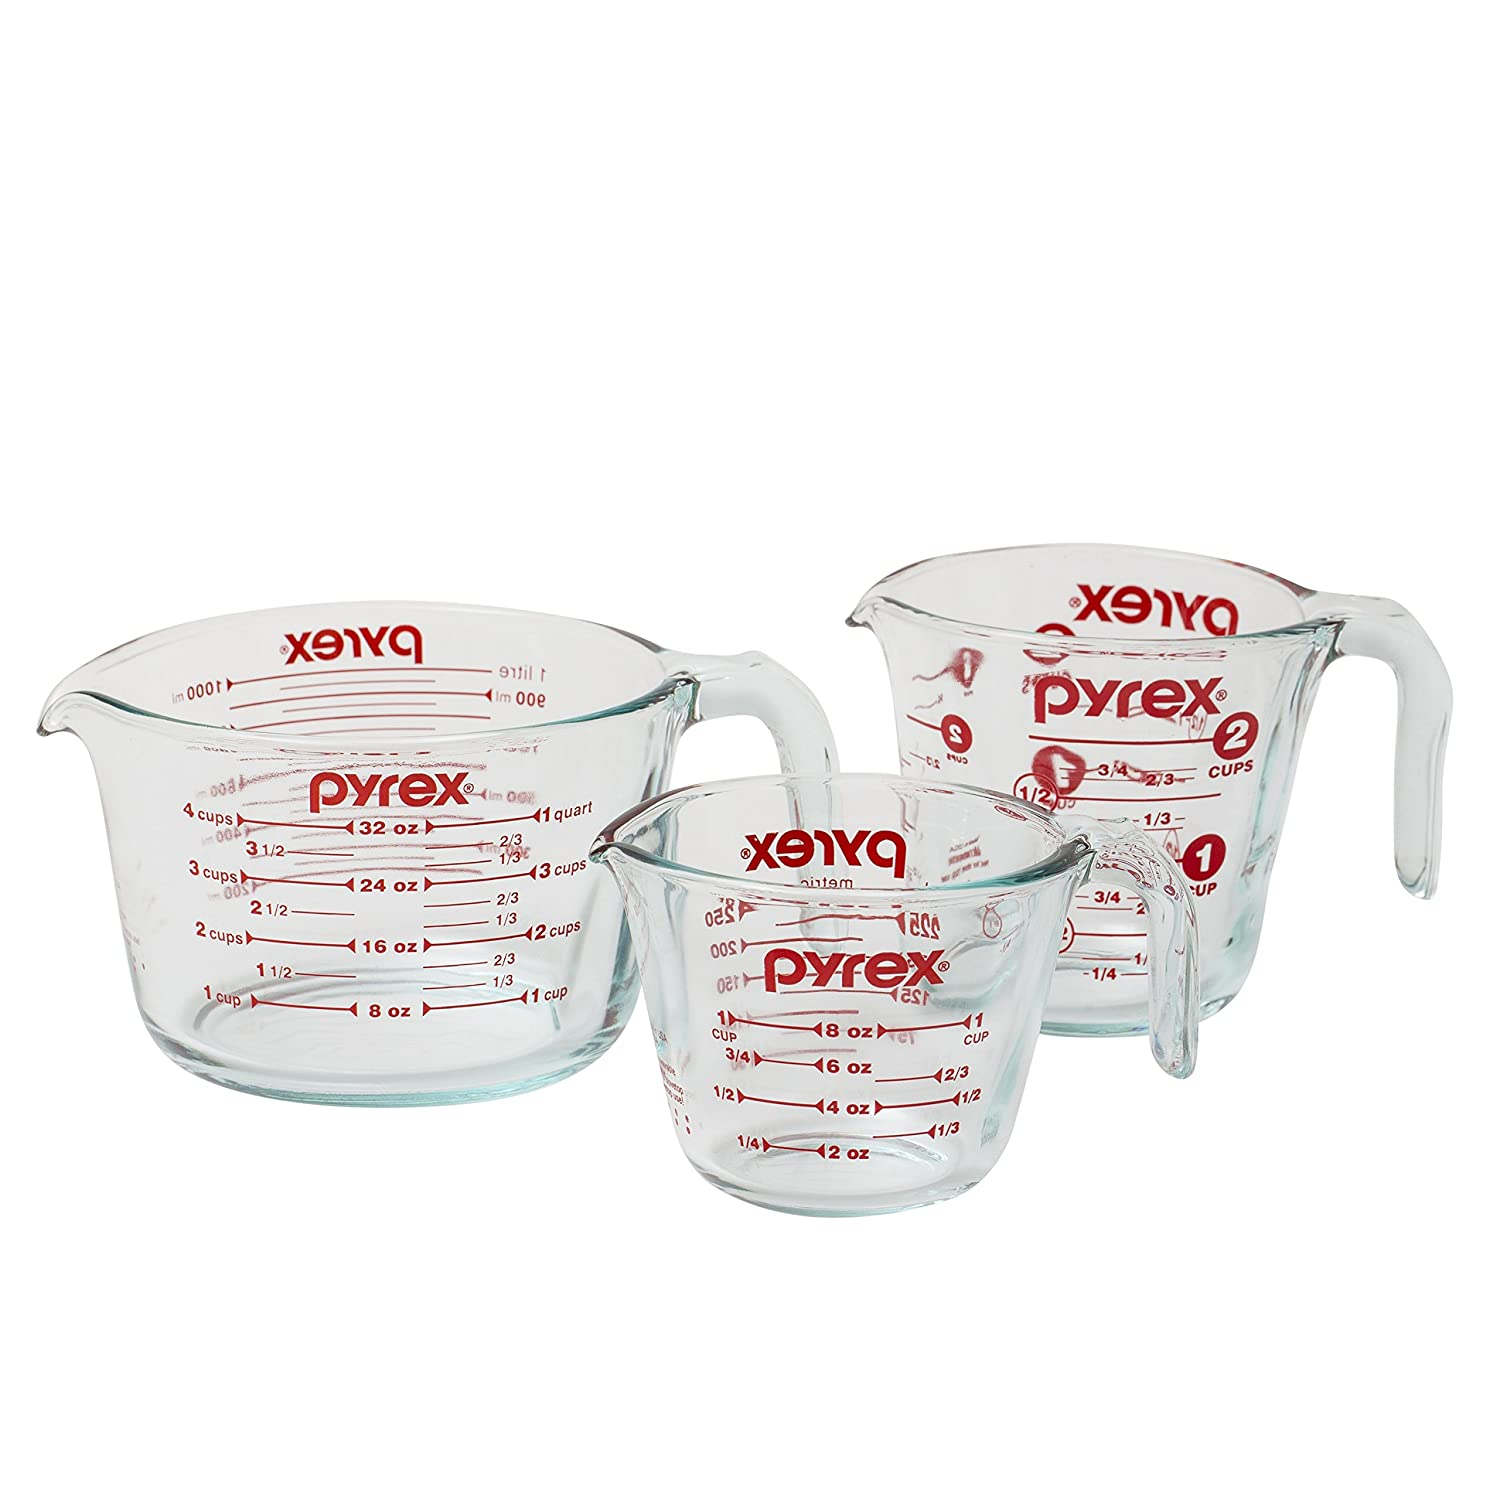 Pyrex Prepware Glass Measuring Cup Set (3 pcs)